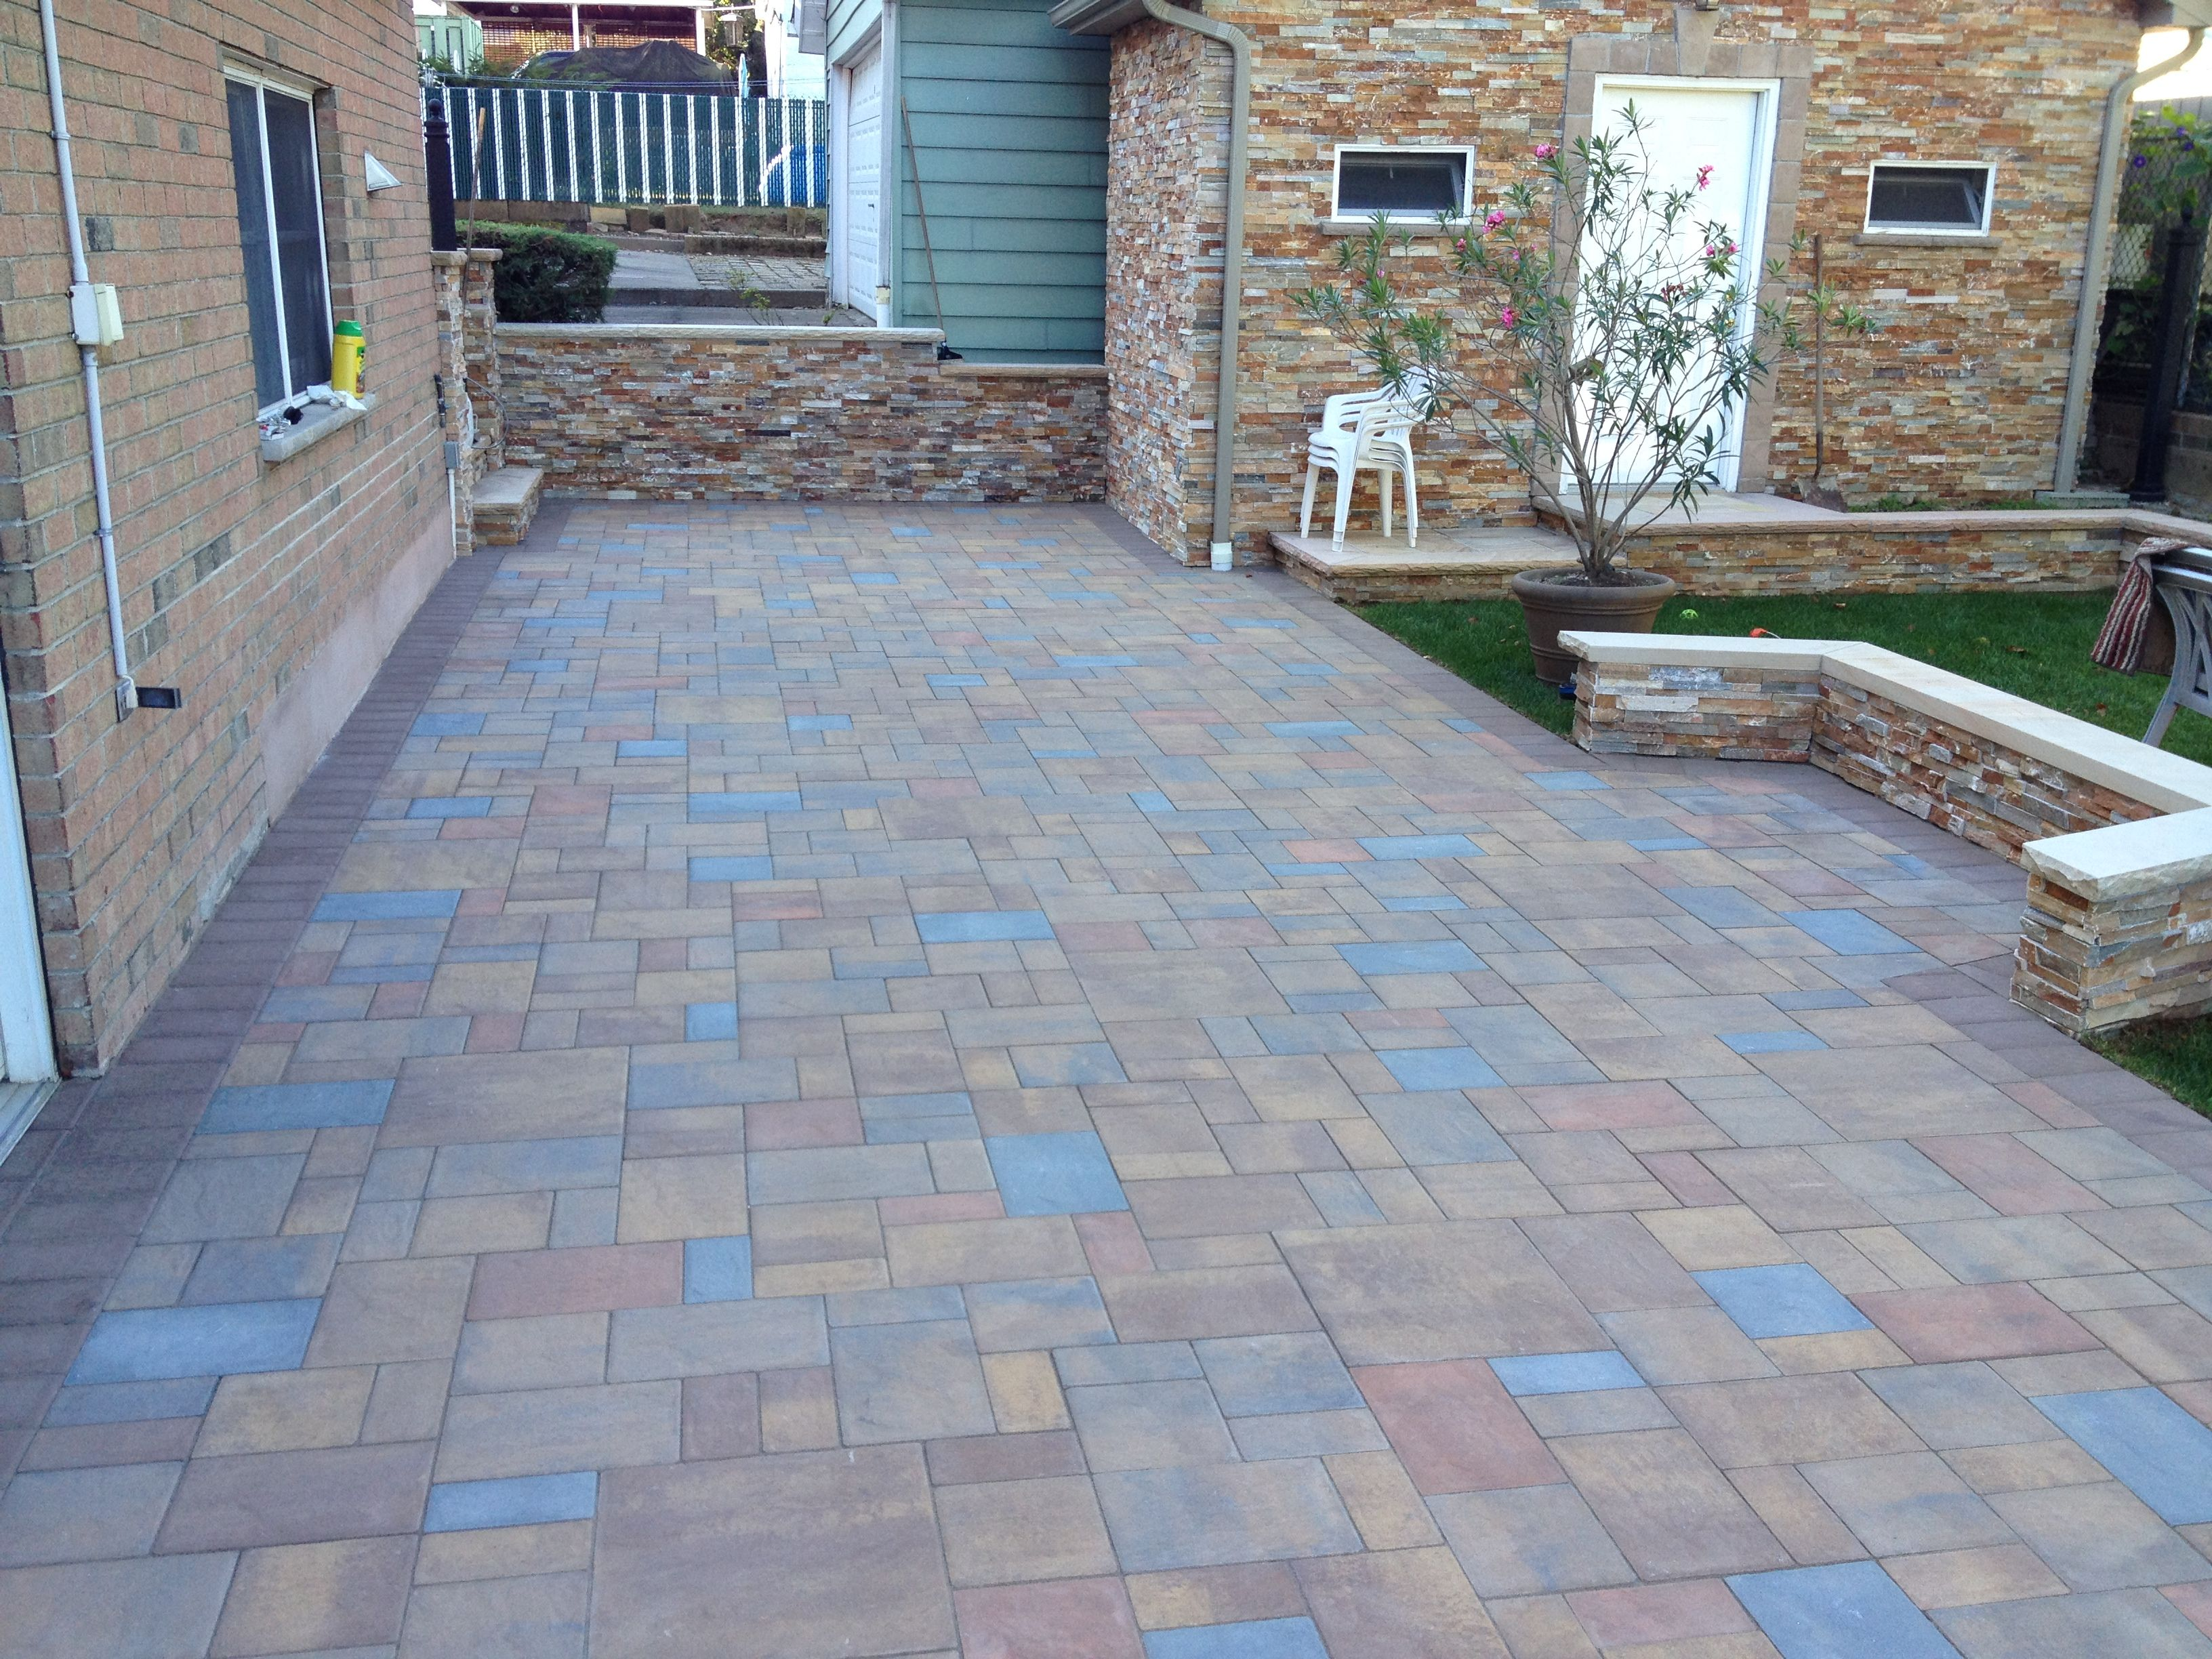 Cambridge pavingstones wall systems color options - 3d Cambridge Ledgestone Paver Patio Installed By Stone Creations Of Long Island Pavers And Masonry Corporation